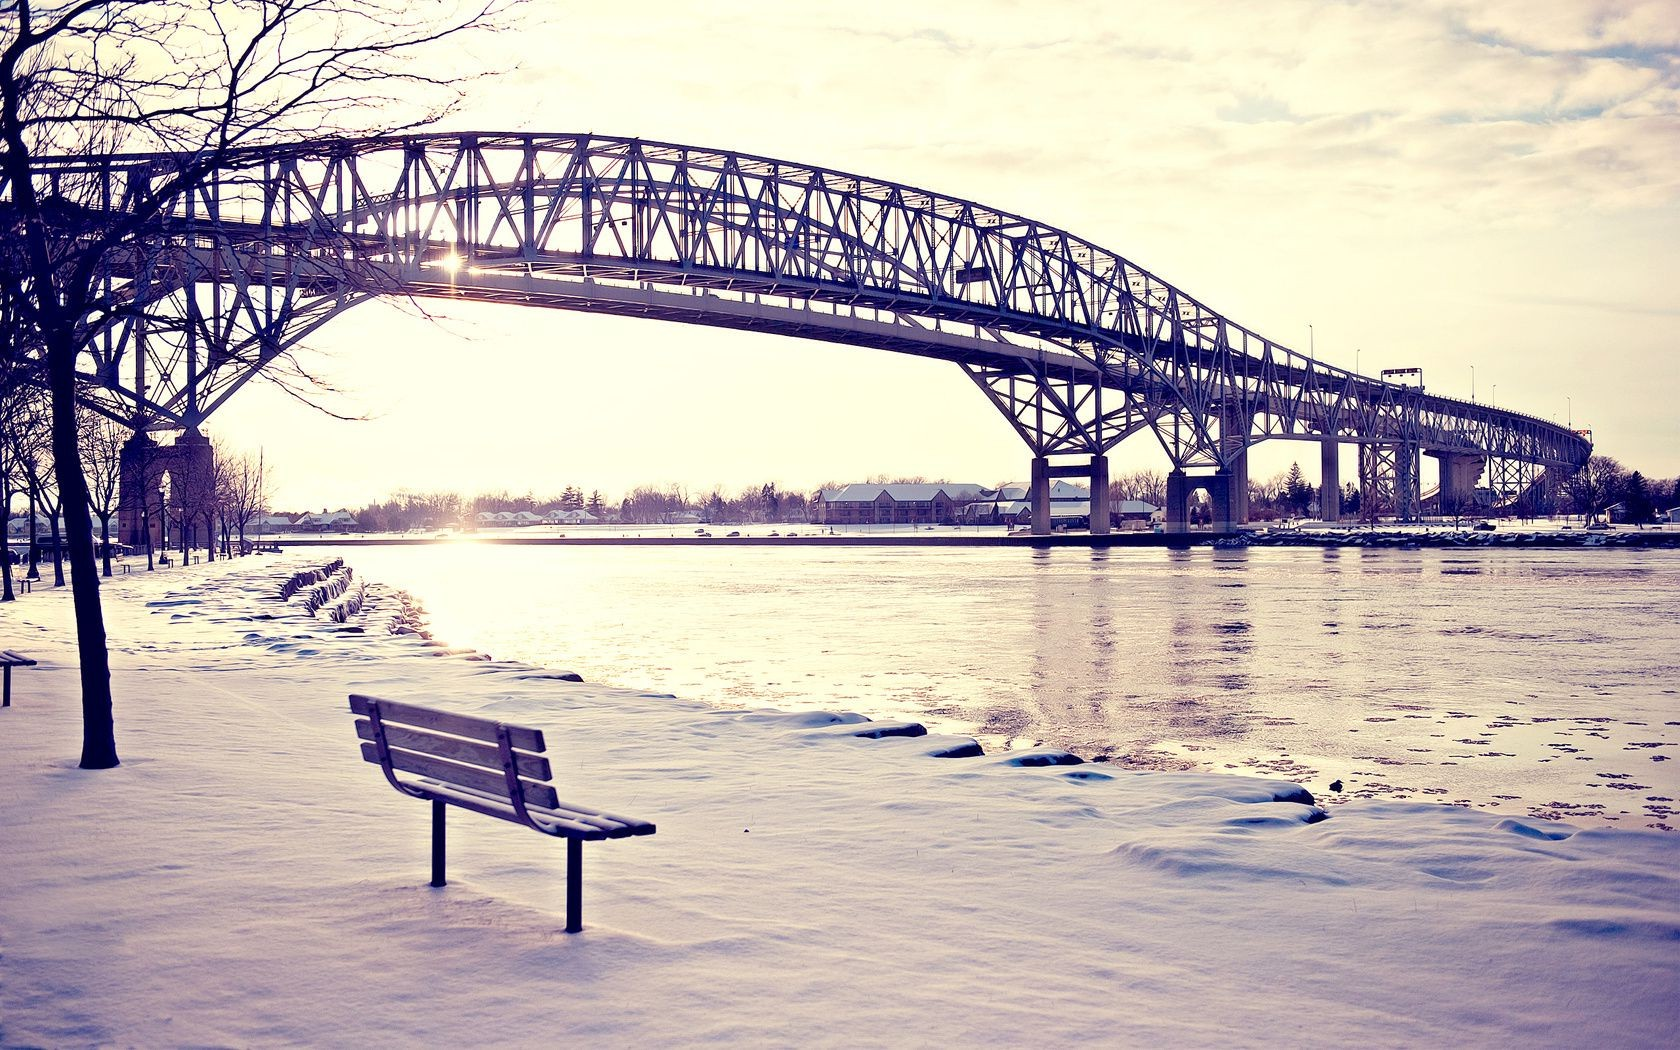 bridges bridge water travel sea beach ocean sky river pier sunset dawn landscape outdoors winter